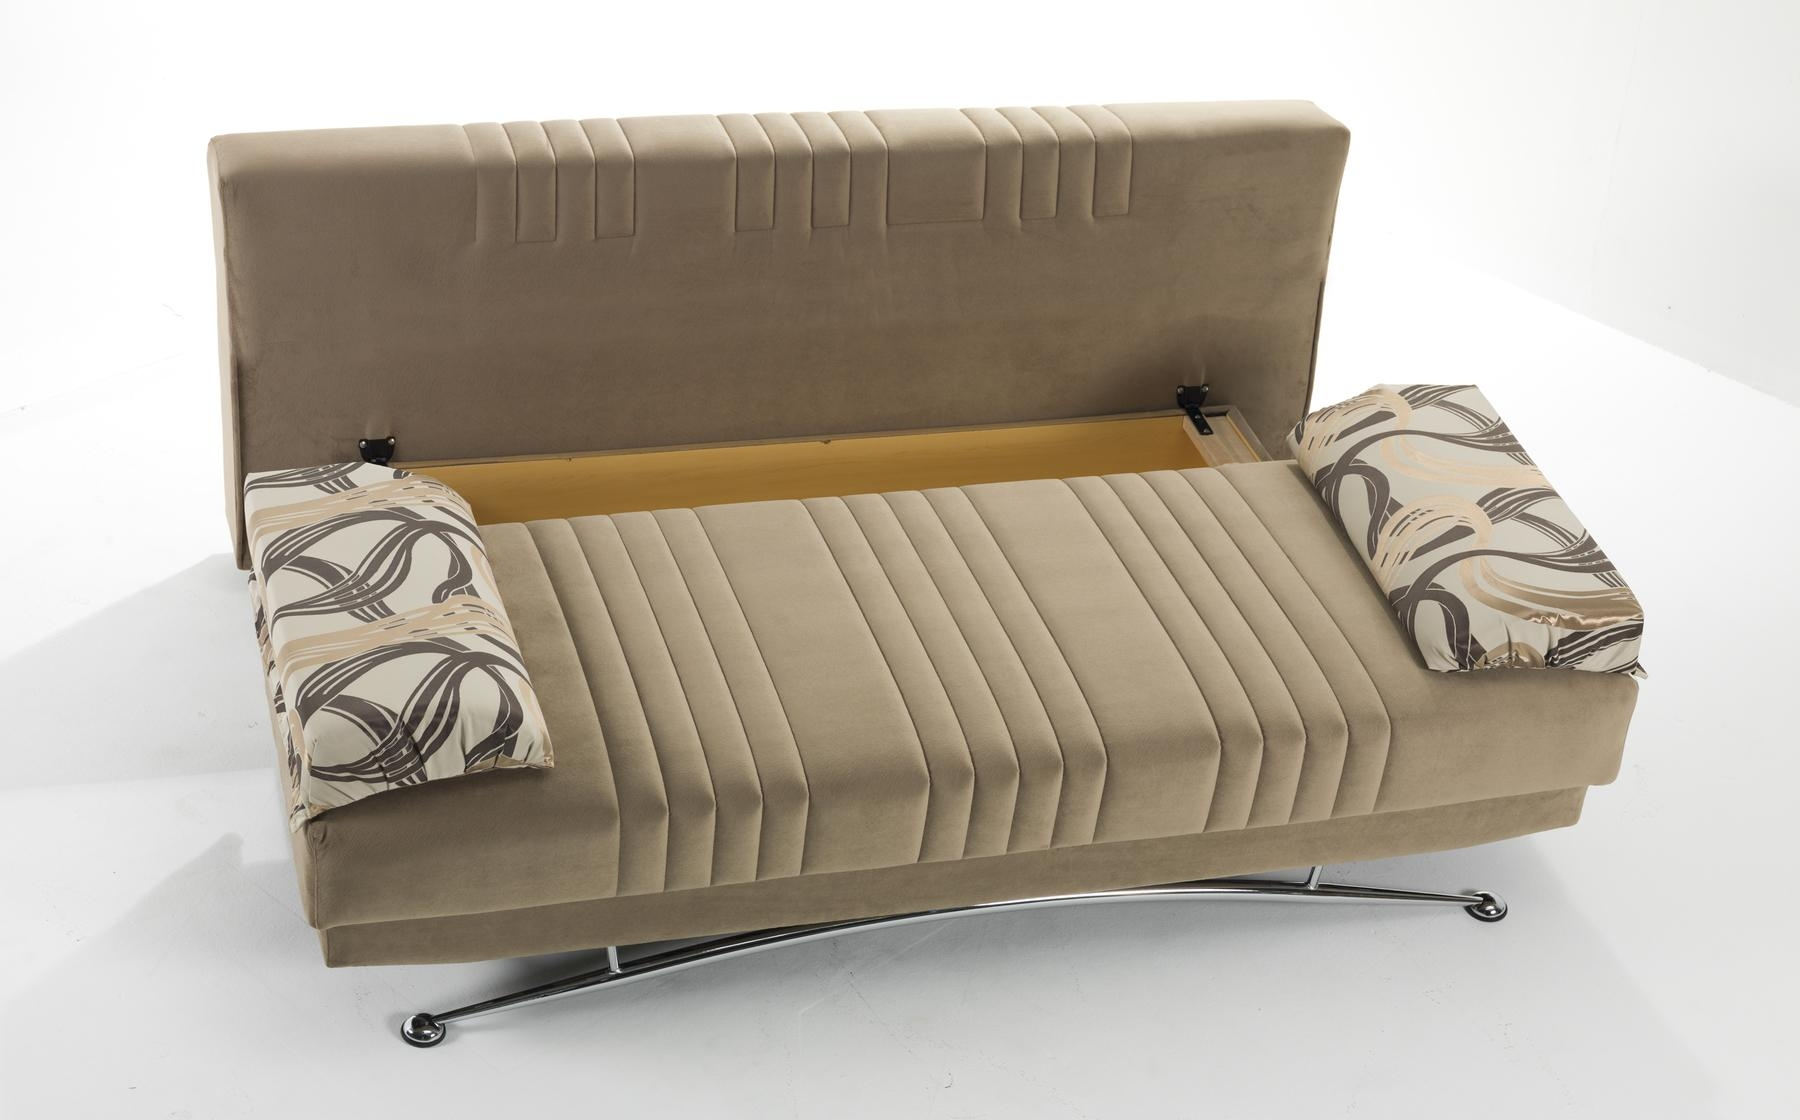 Sofas Center : Best Sofads For Everyday Use Ukbest Support Board Intended For Sofas With Support Board (View 7 of 20)